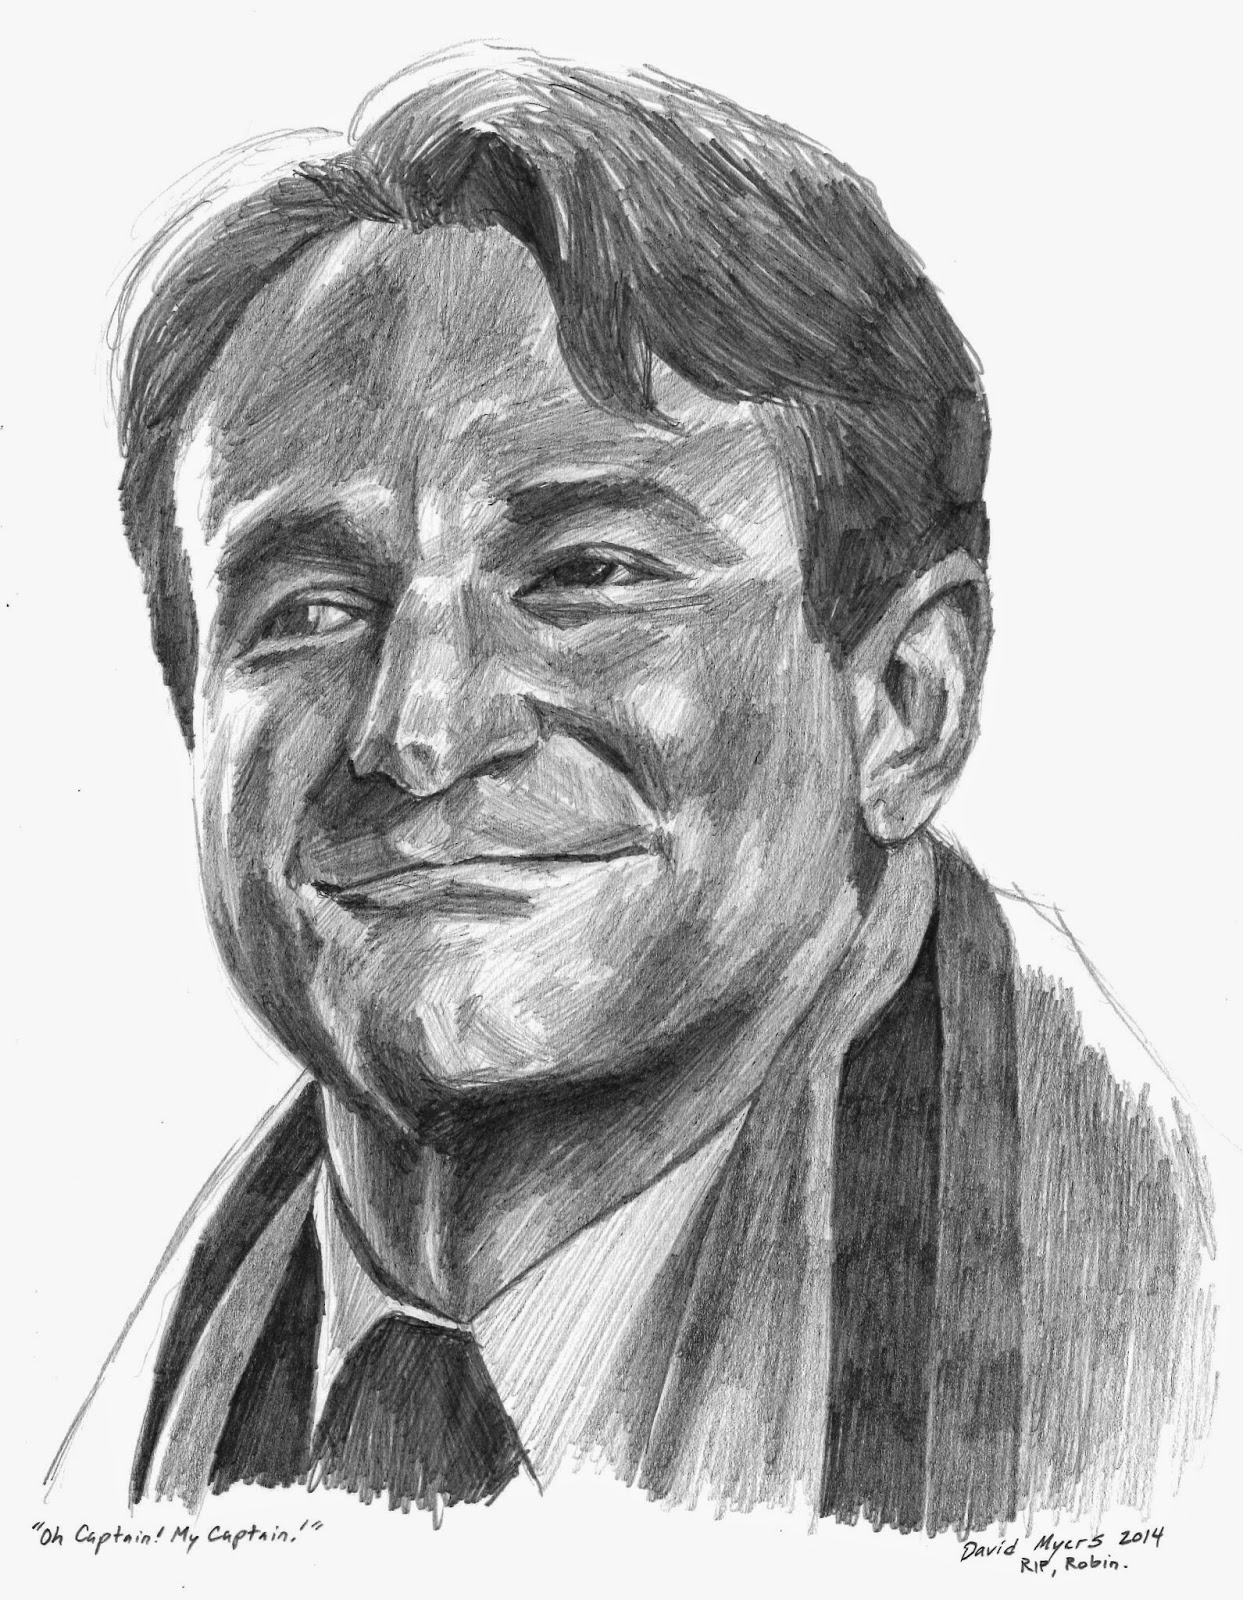 the art of david myers you had such a kind face robin i think that the reason that the kindness in your characters was so real was due to the pain you had experienced